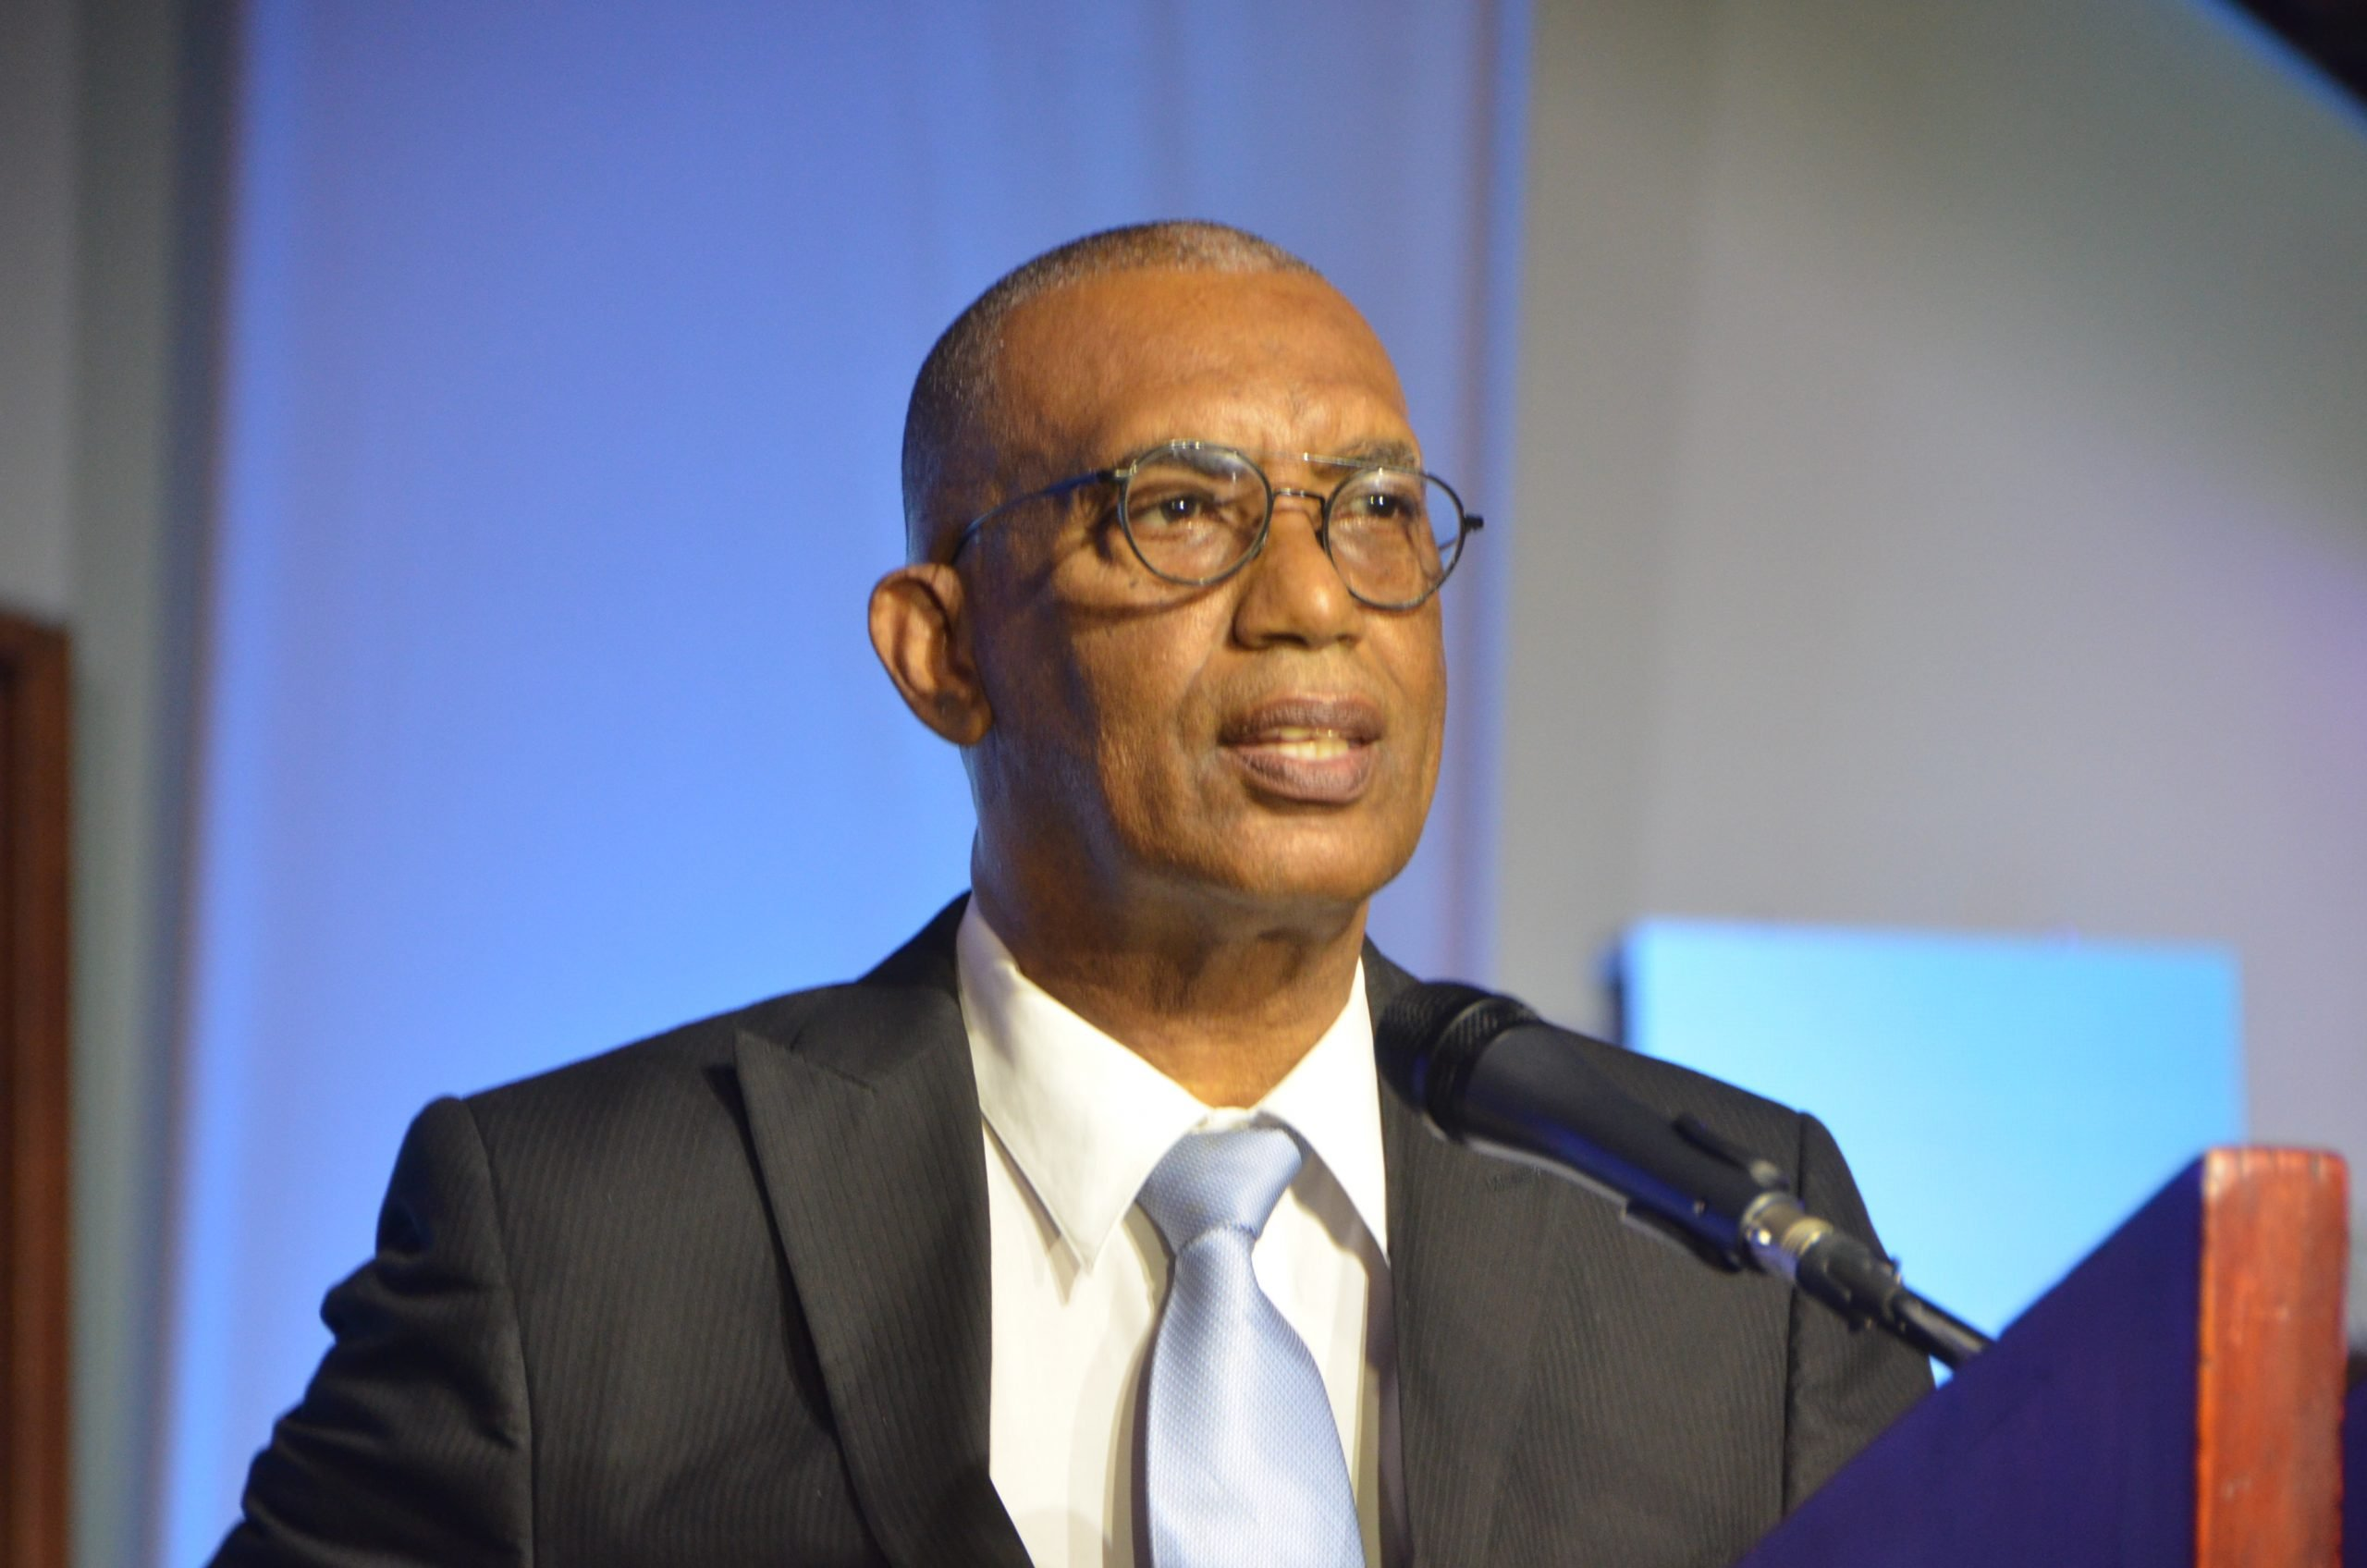 Church Leader calls for a Moral Agenda to Guide Jamaica